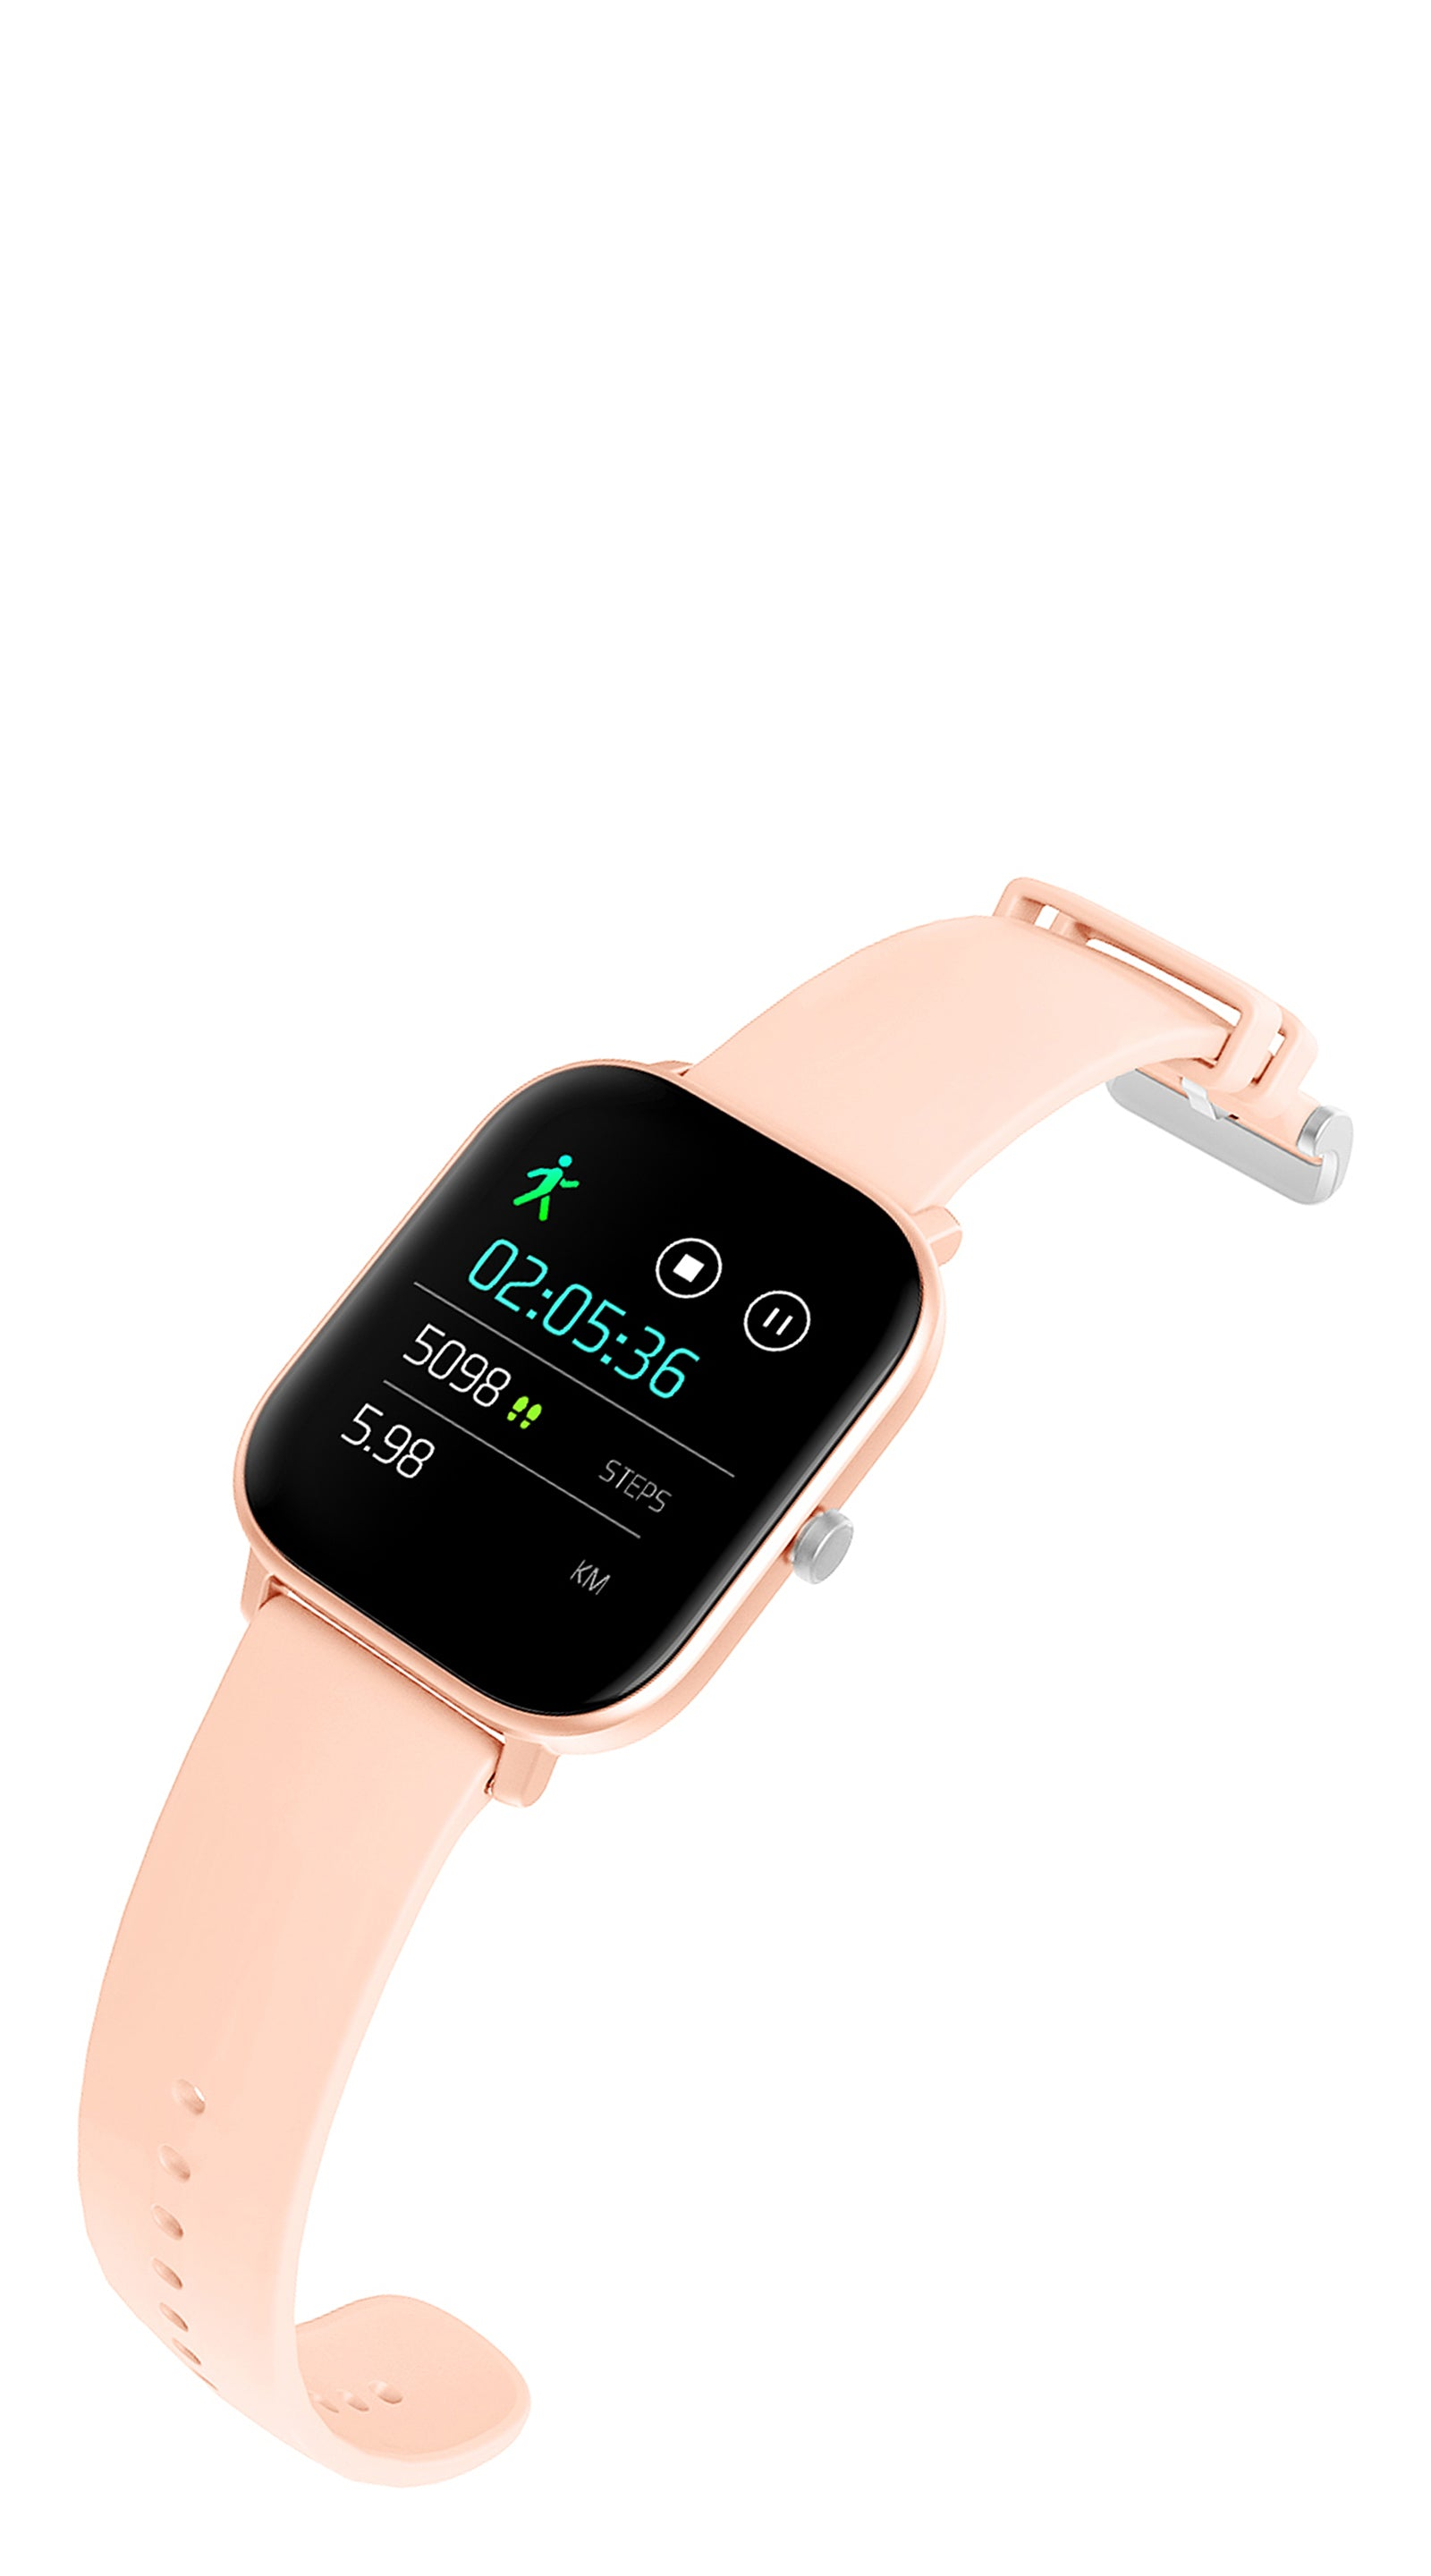 COLMI P8 Pro Smart watch Made for Fitness - APP